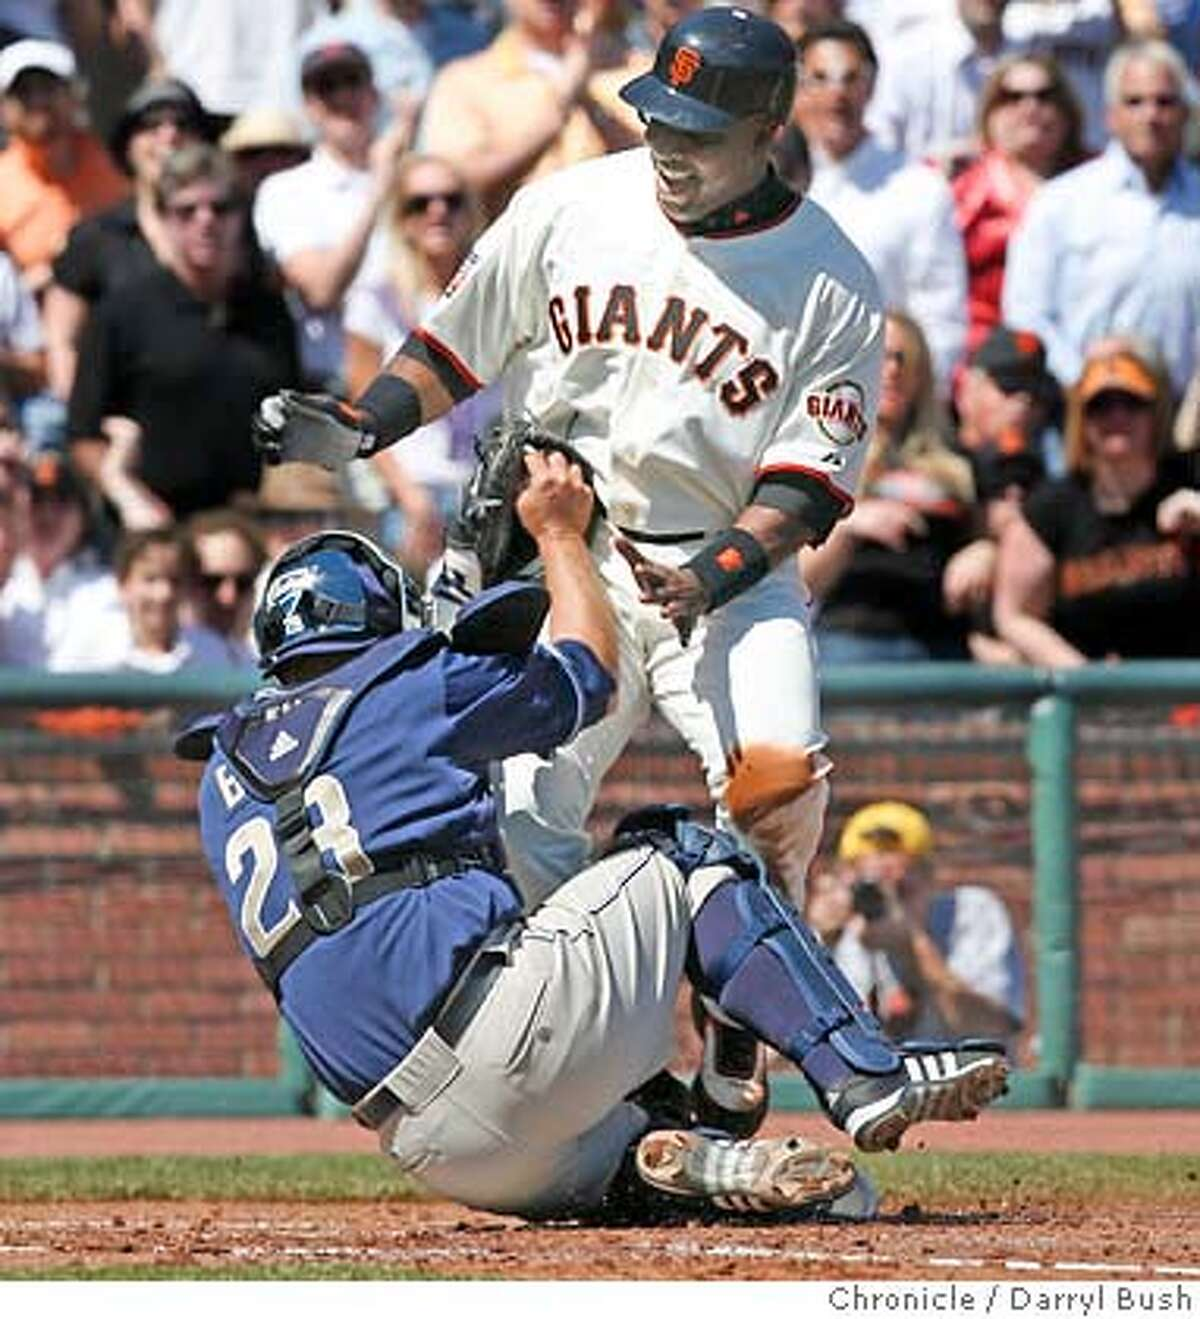 Barry Bonds is tagged out at home in the bottom of the first inning while trying to score off of a wild throw to first base. 2007 Giants Opening Day at AT&T Park Street in San Francisco on Tuesday, April 03, 2007. photo taken: 04/03/07 Darryl Bush / The Chronicle ** Barry Bonds (roster cq)